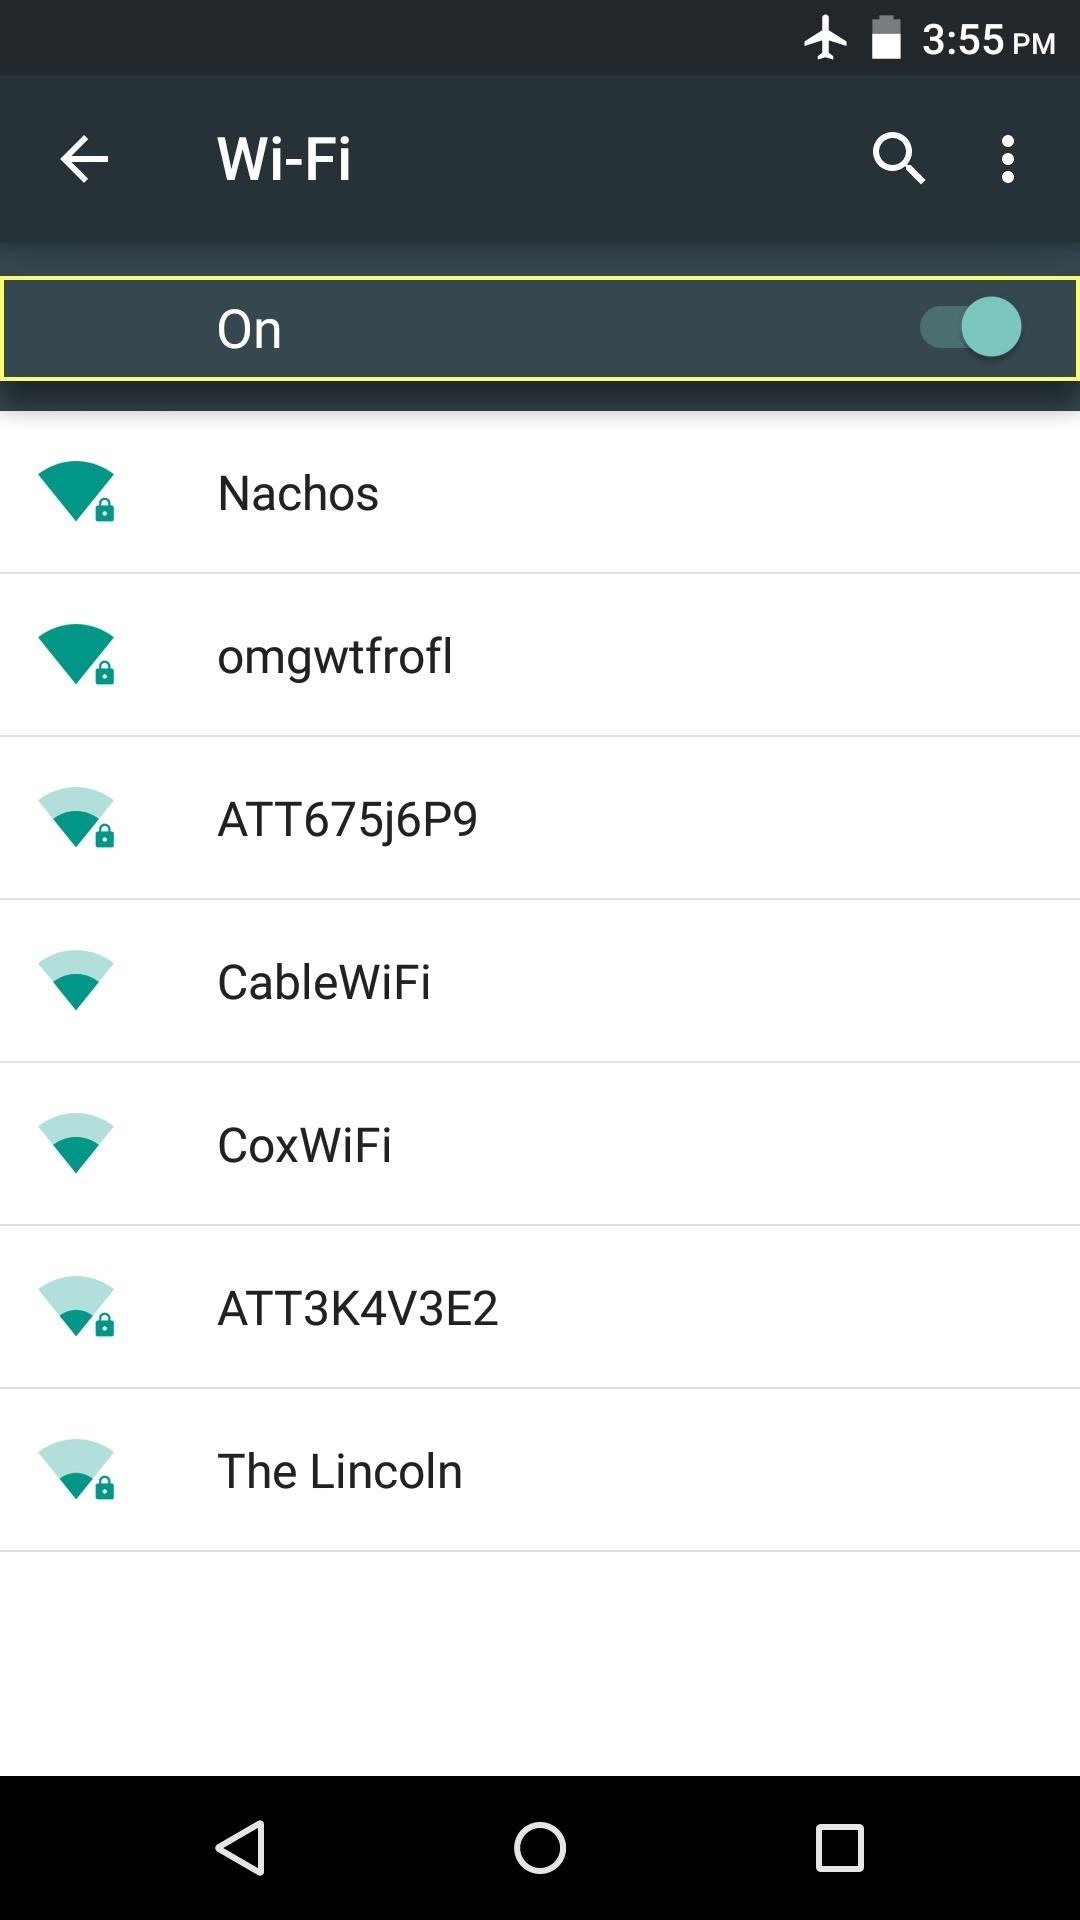 Android Basics: How to Connect to a Wi-Fi Network